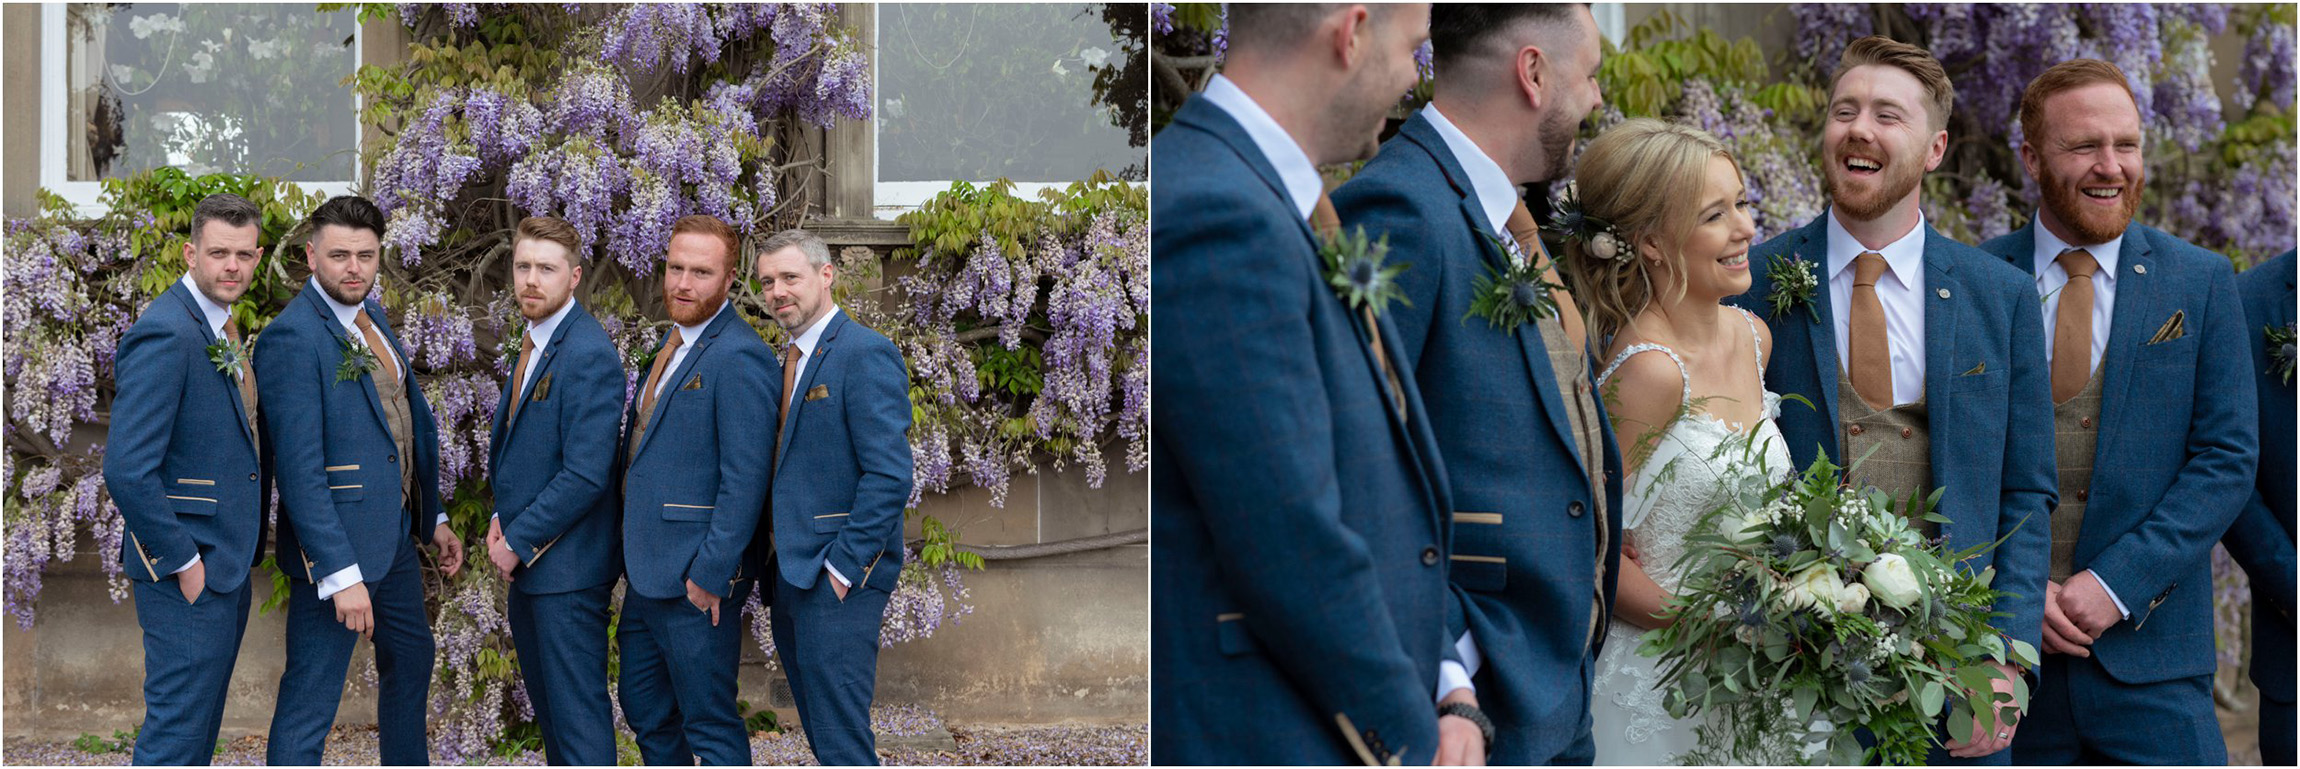 ©FianderFoto_Scotland Wedding Photographer_Errol Park Estate_Janine_Karl_109.jpg